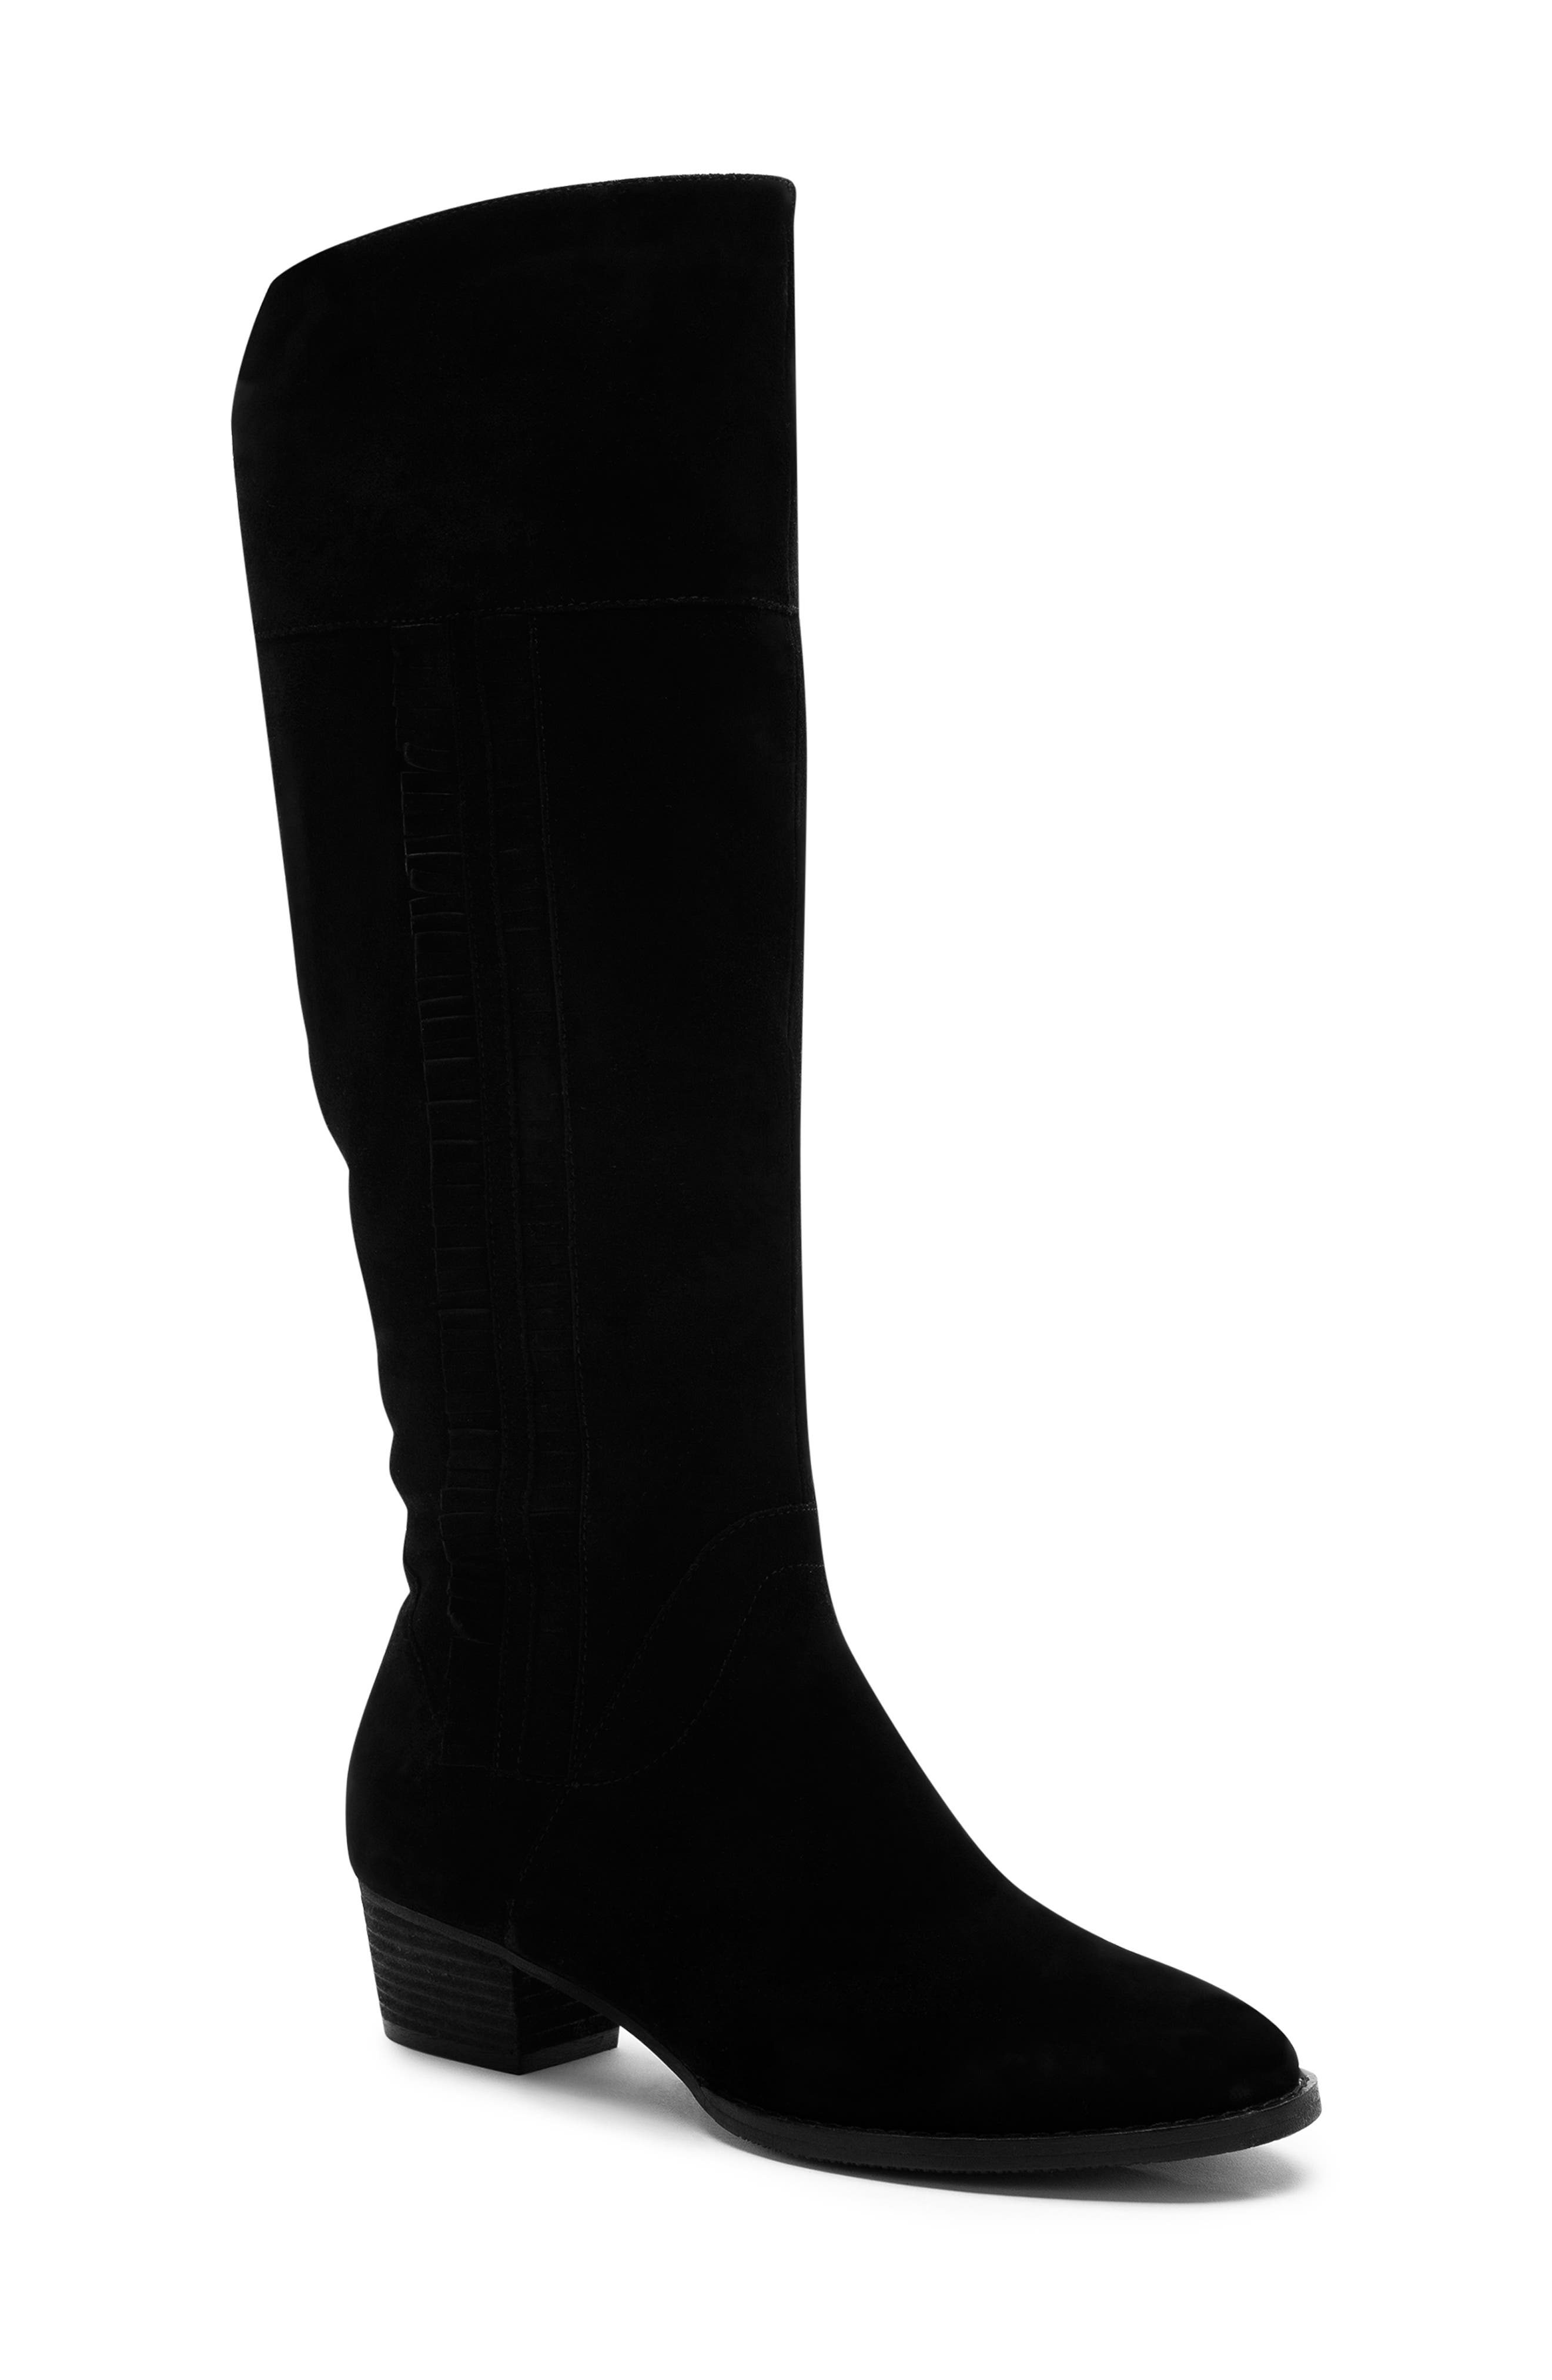 Blondo Nestle Waterproof Knee High Boot- Black